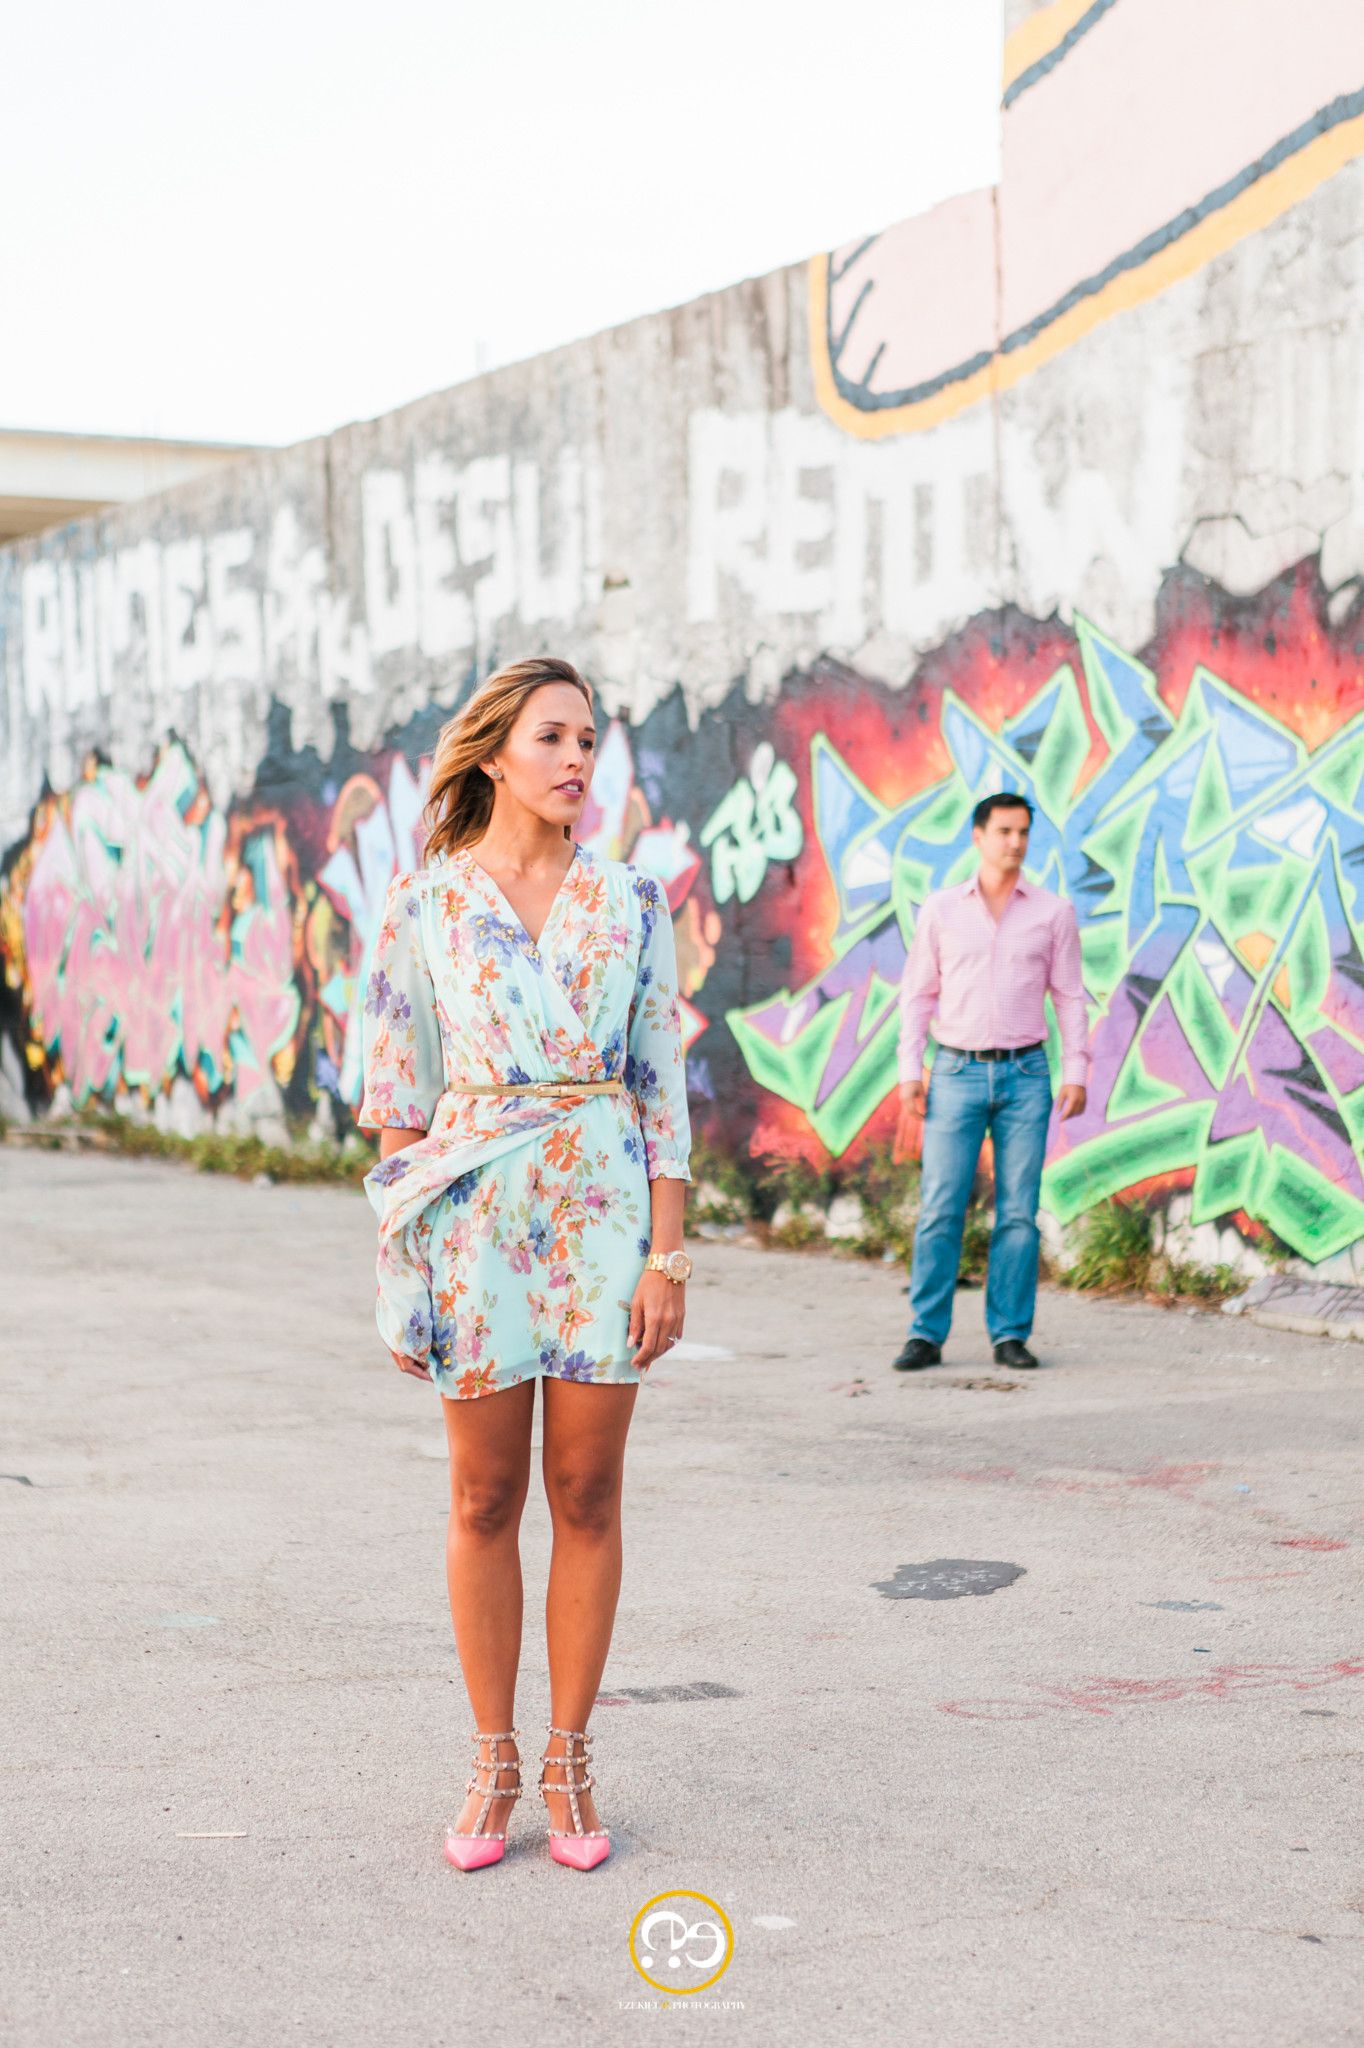 Walls of Wynwood - Engagement Photos Shoot in the Miami Art District by Award Winning Miami wedding Photographer #ezekiele